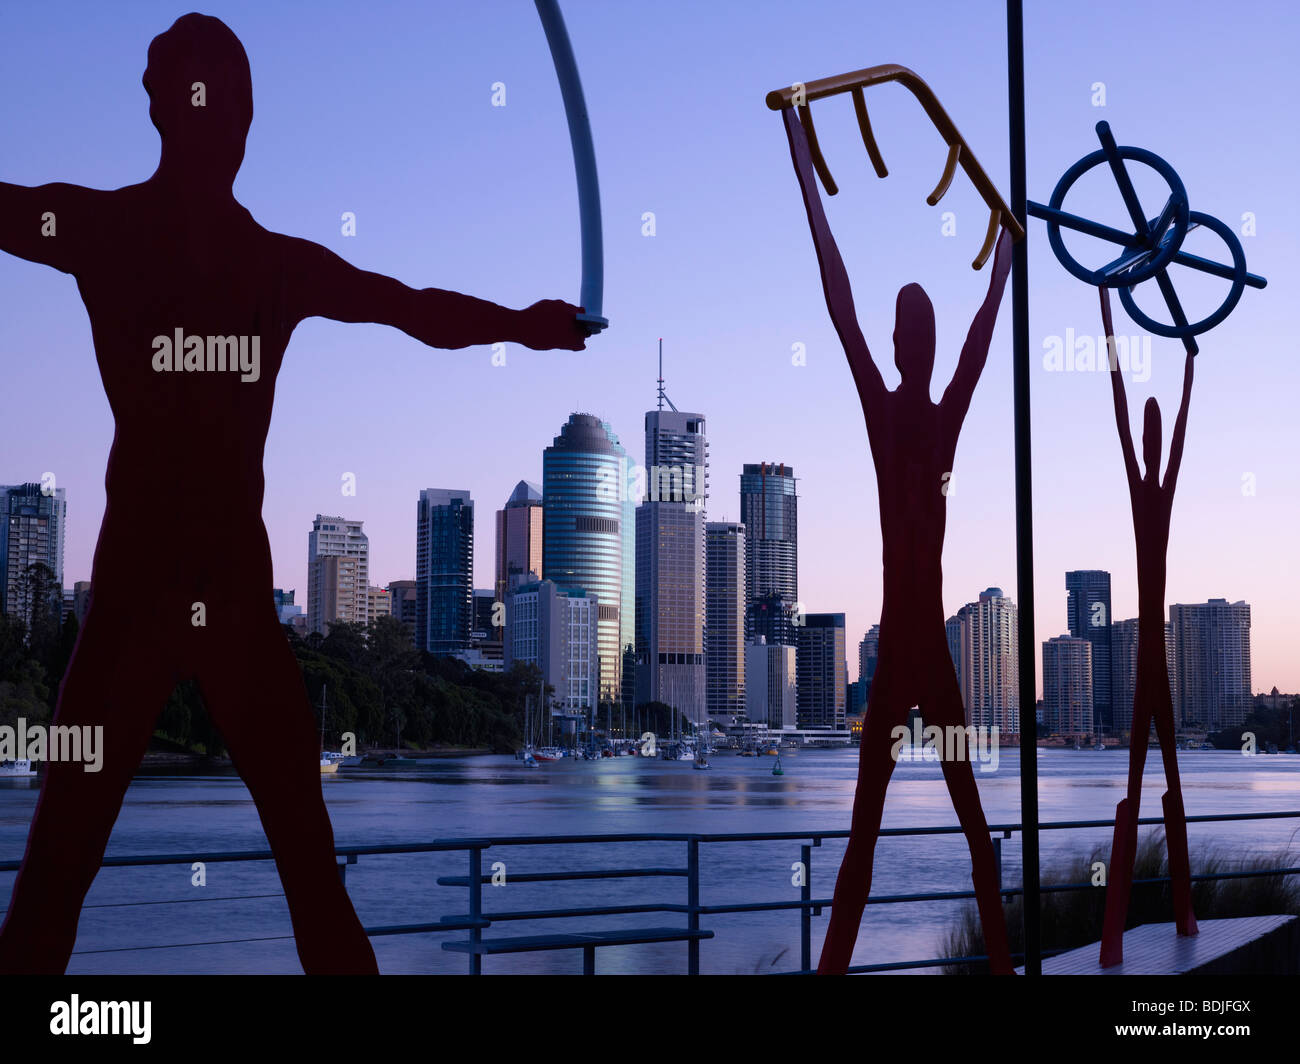 Brisbane city Australia and urban sculptures - Stock Image